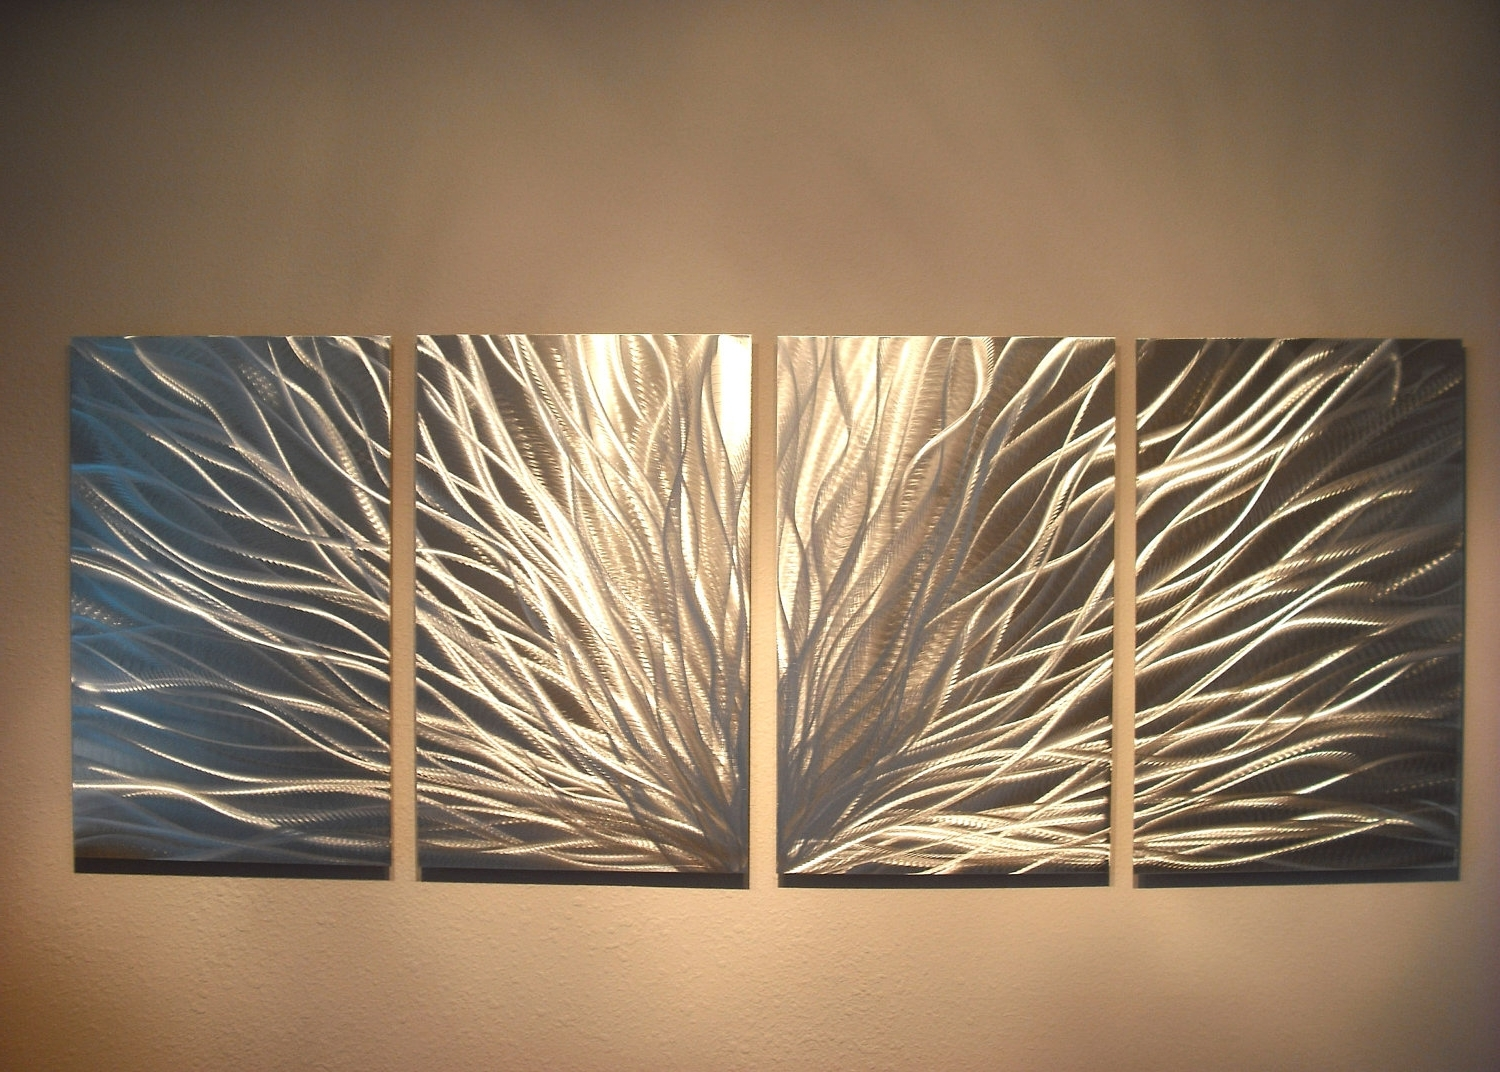 Best And Newest Radiance – Abstract Metal Wall Art Contemporary Modern Decor Throughout Wall Art Metal (View 2 of 15)